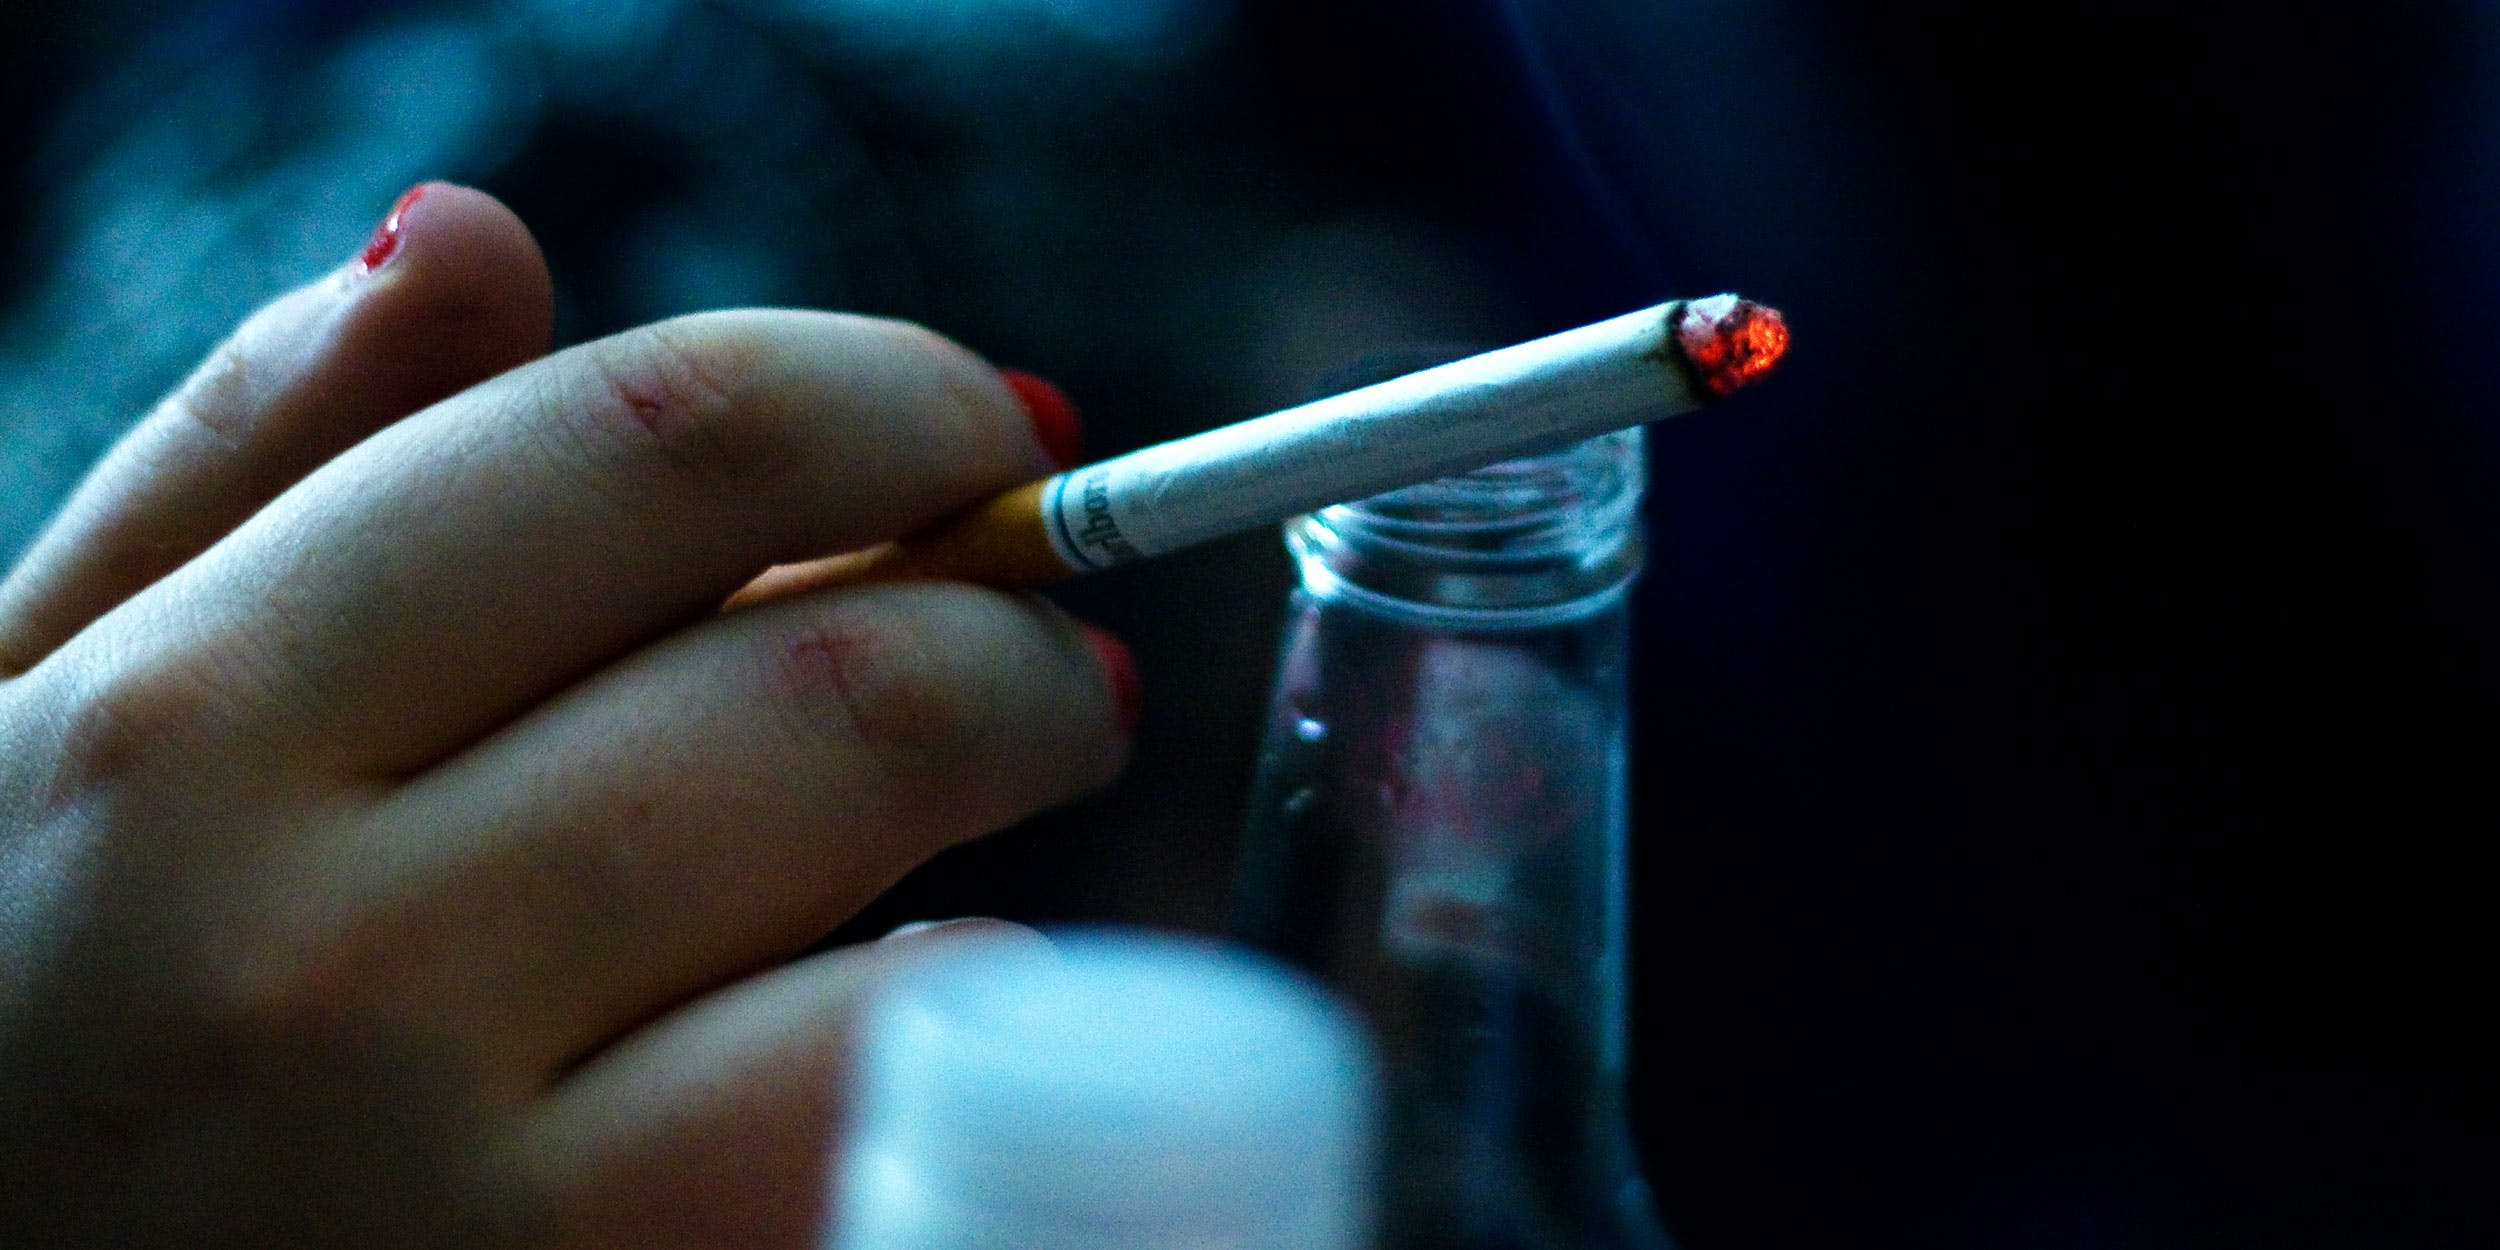 Beer bottle and a hand holding a cigarette. A new review of global substance use data has shown that alcohol and tobacco are far more harmful than cannabis.